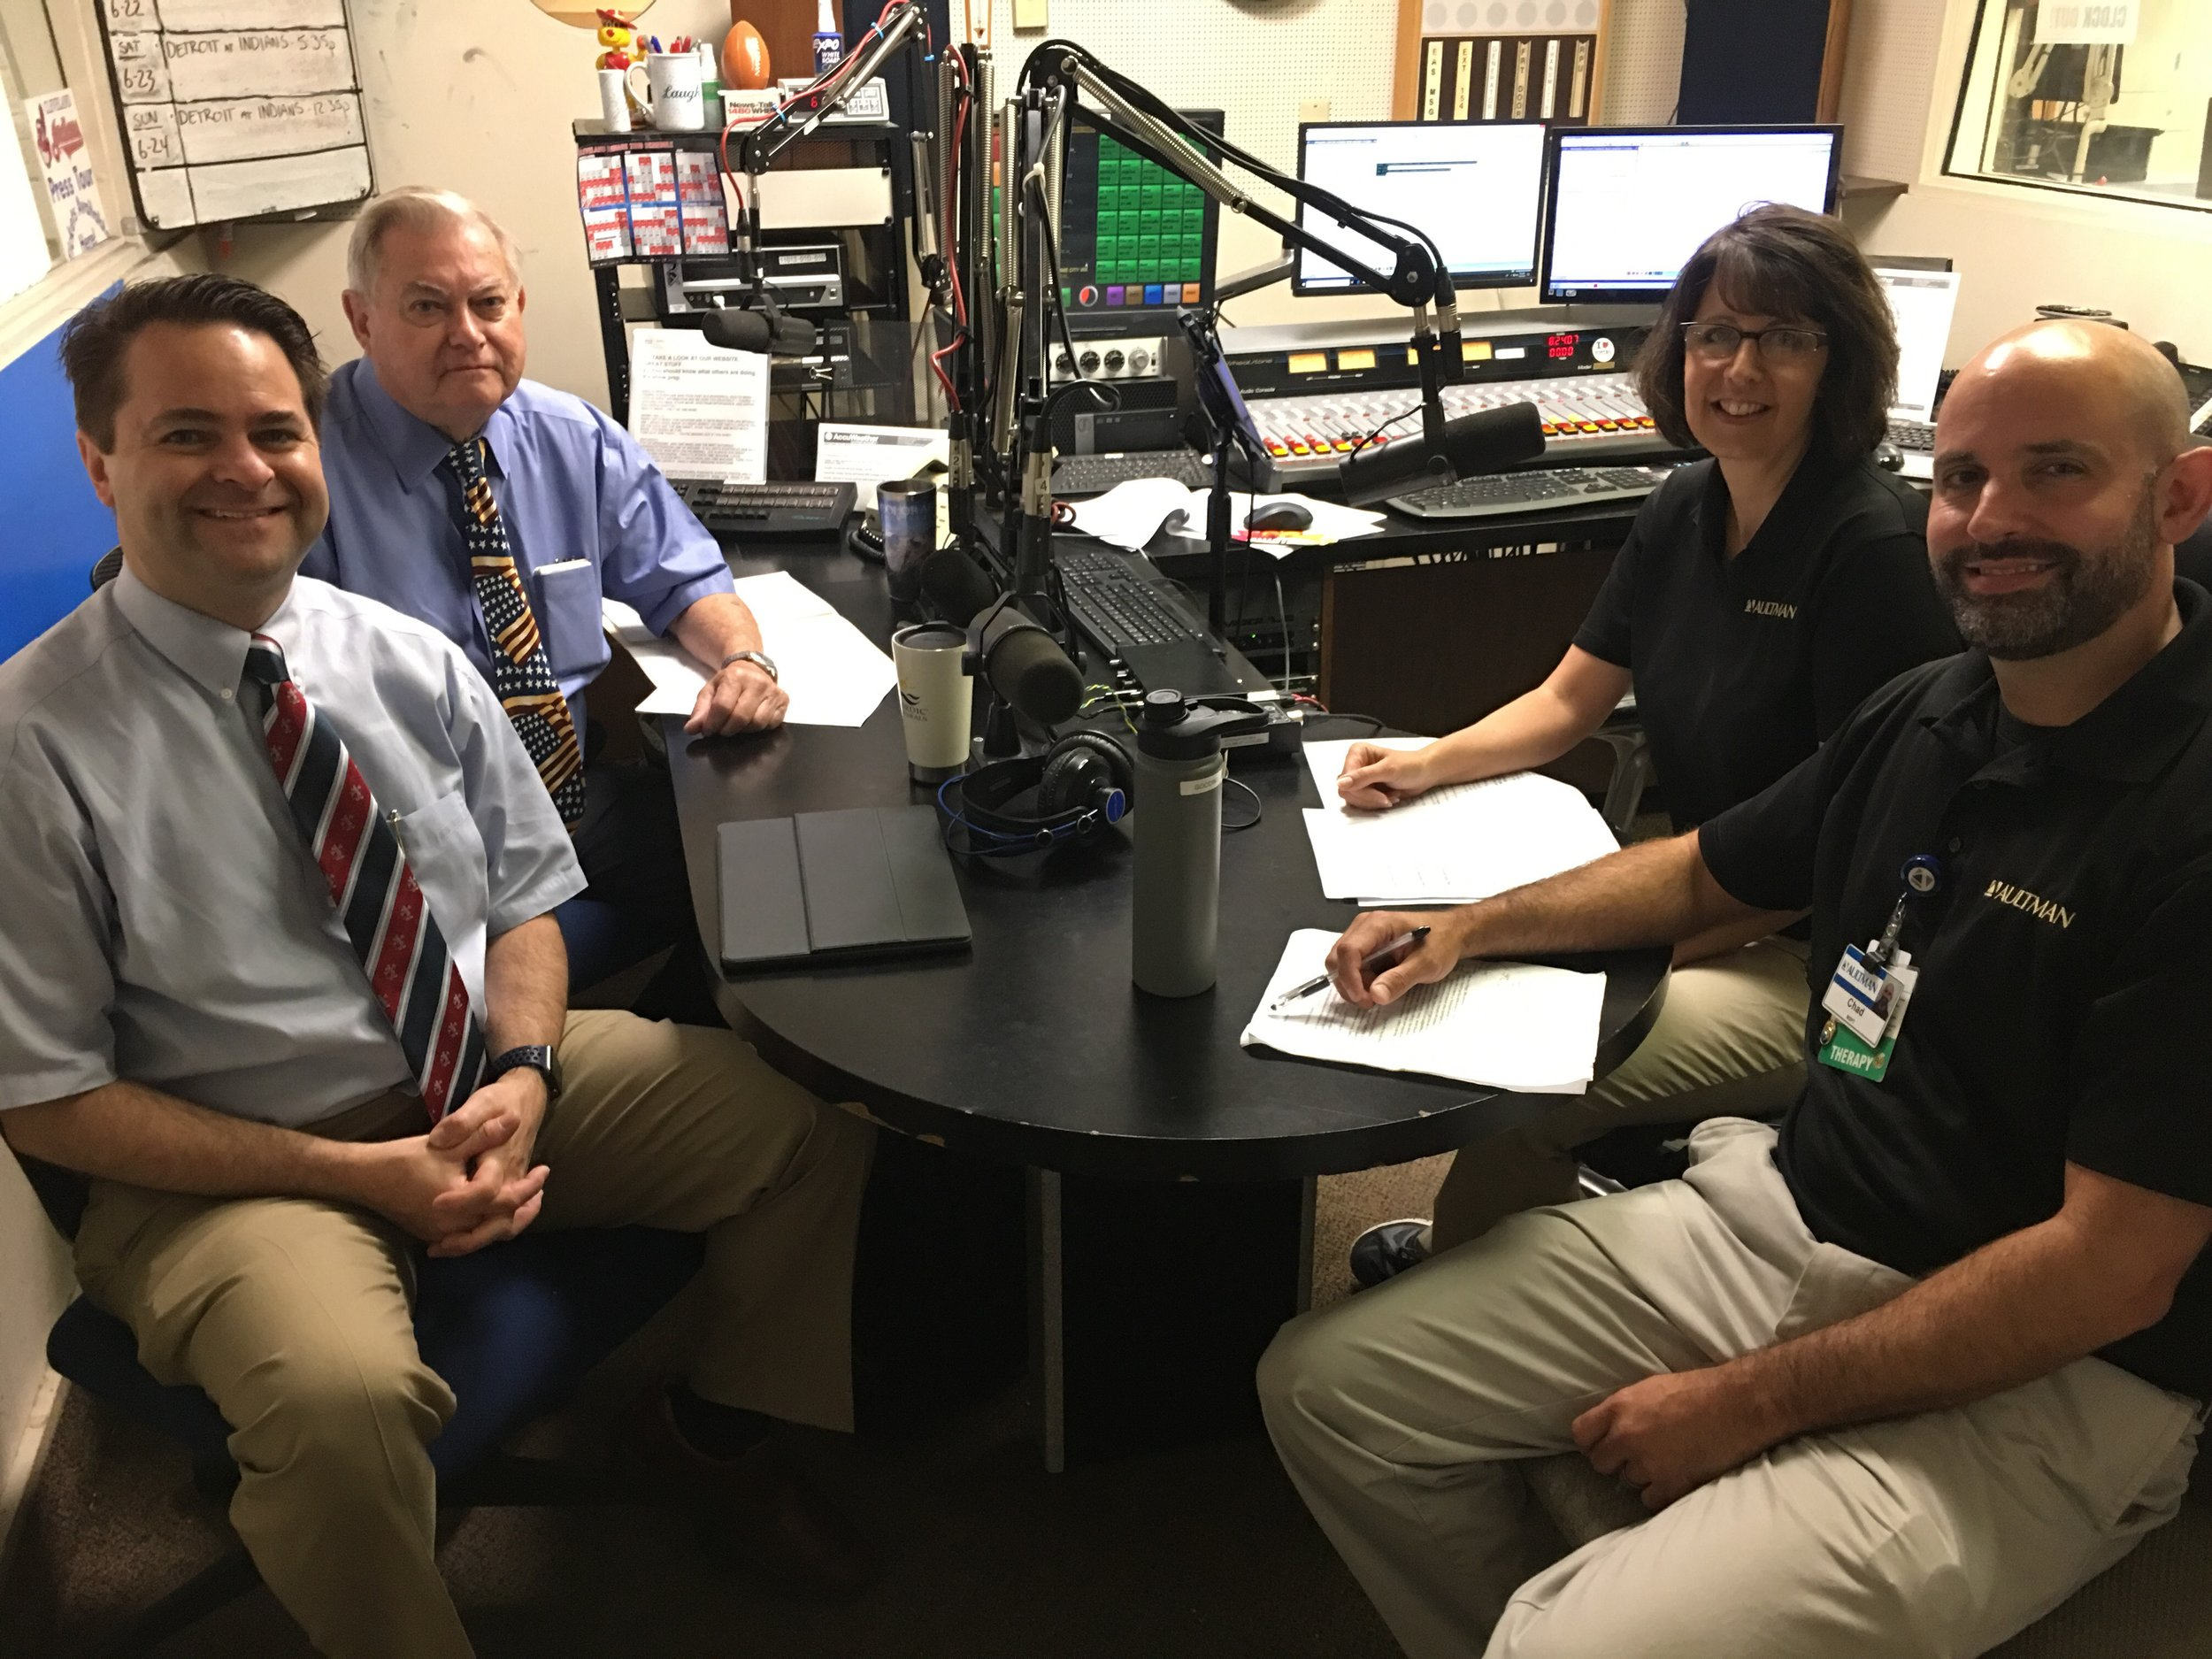 From left, Brad White and Paul White discuss Parkinson's Disease with Aultman Hospital's Michelle Sommers and Chad Gooding.